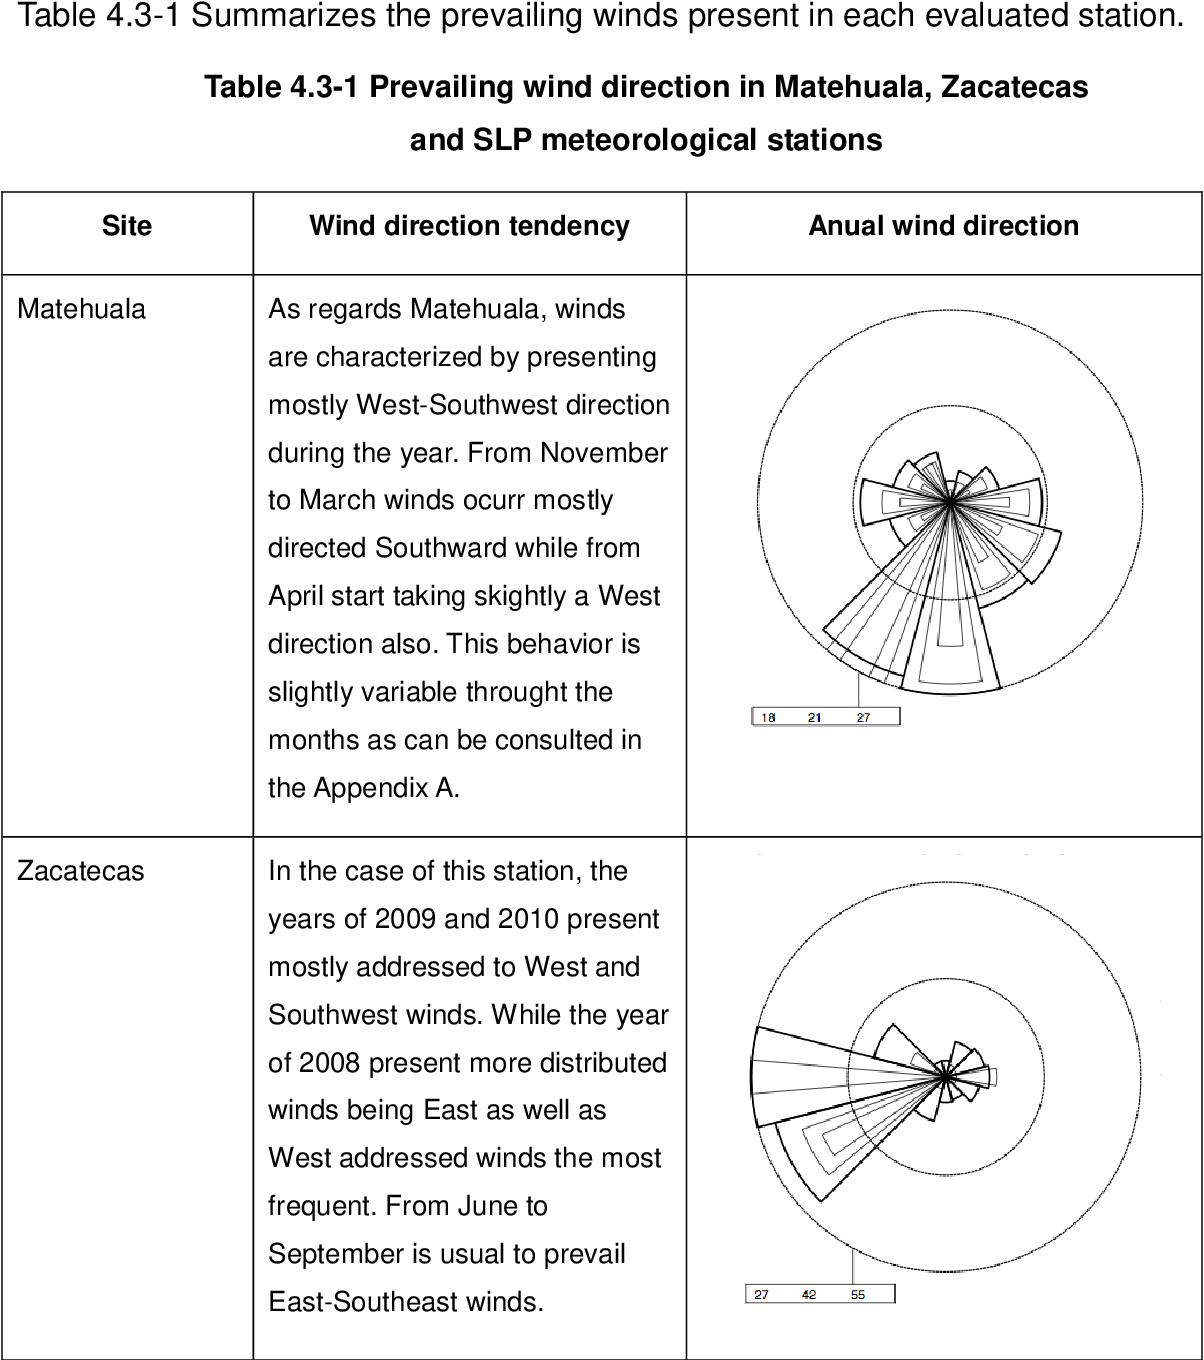 Table 4.3-1 Prevailing wind direction in Matehuala, Zacatecas and SLP meteorological stations